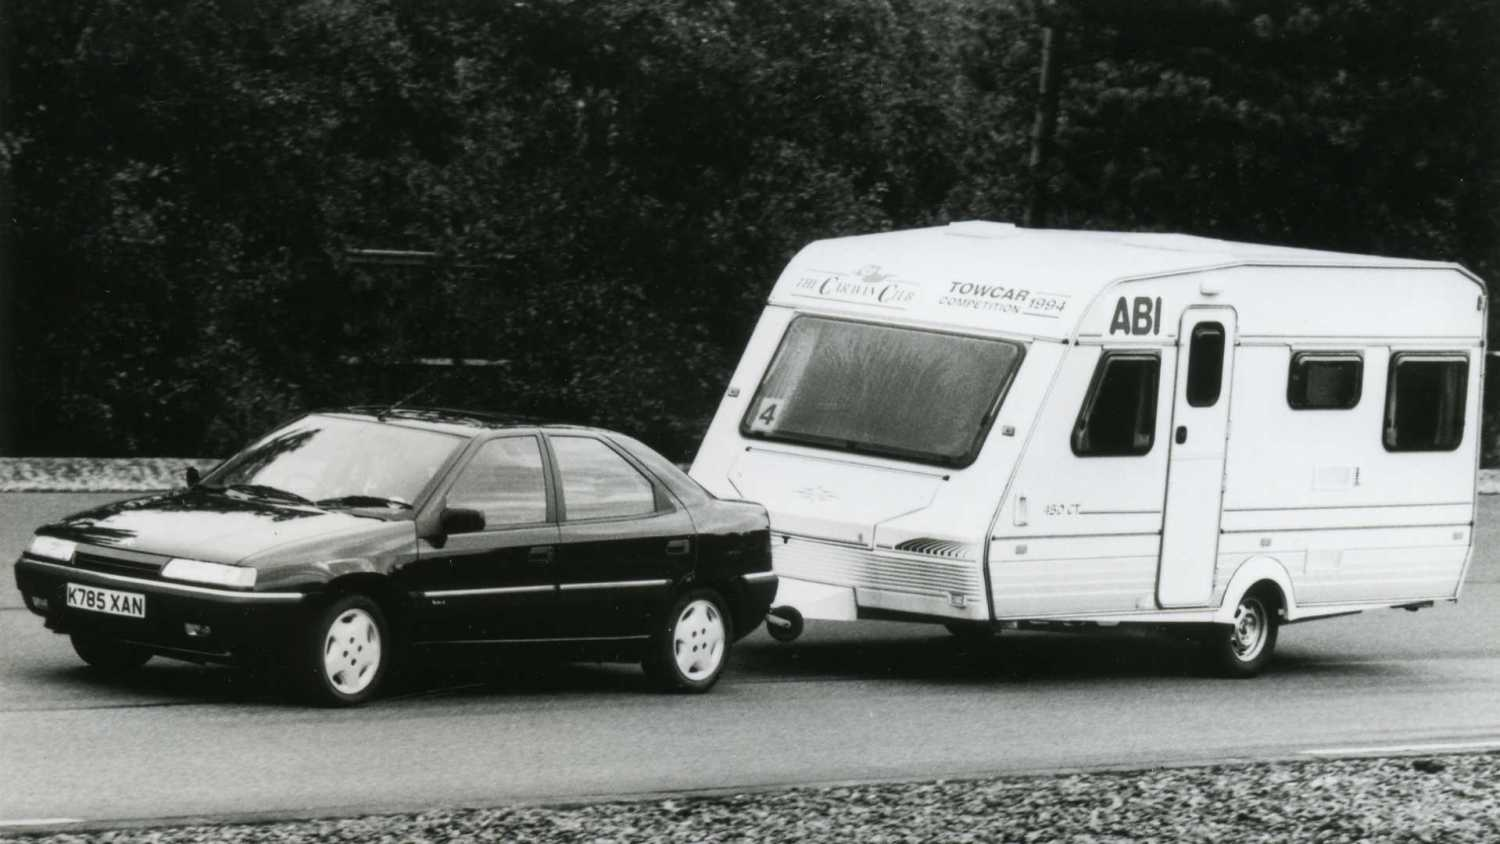 Citroen Xantia towing a caravan